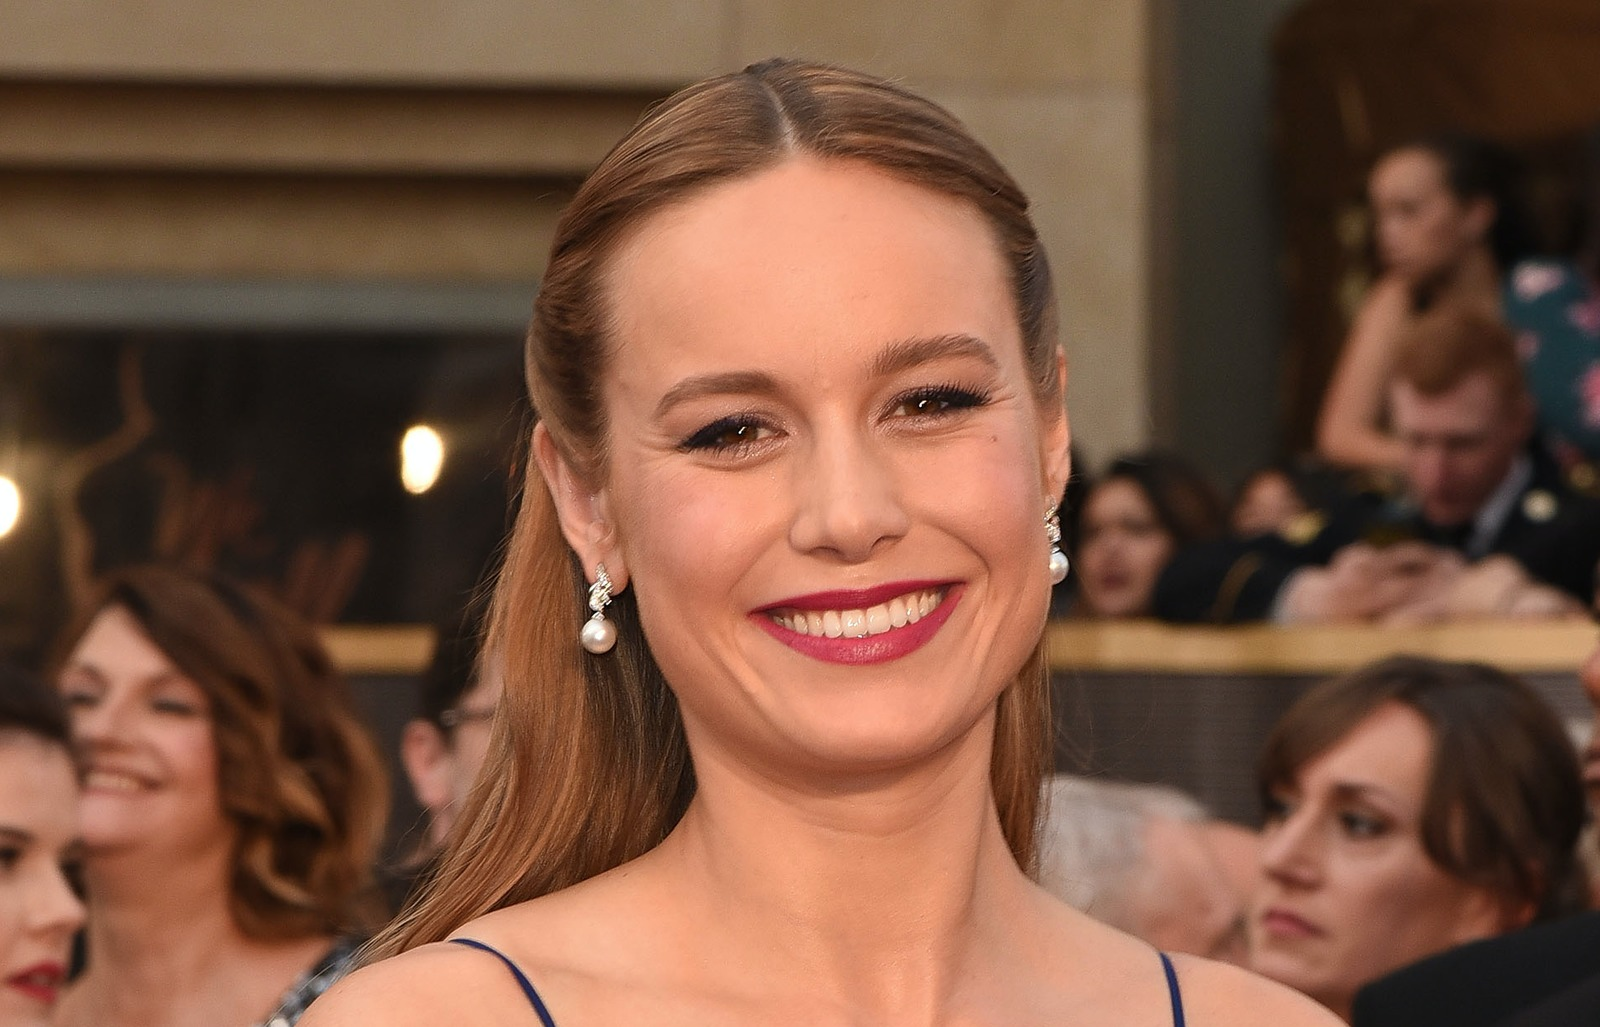 'Captain Marvel' Star Brie Larson Launches YouTube Channel